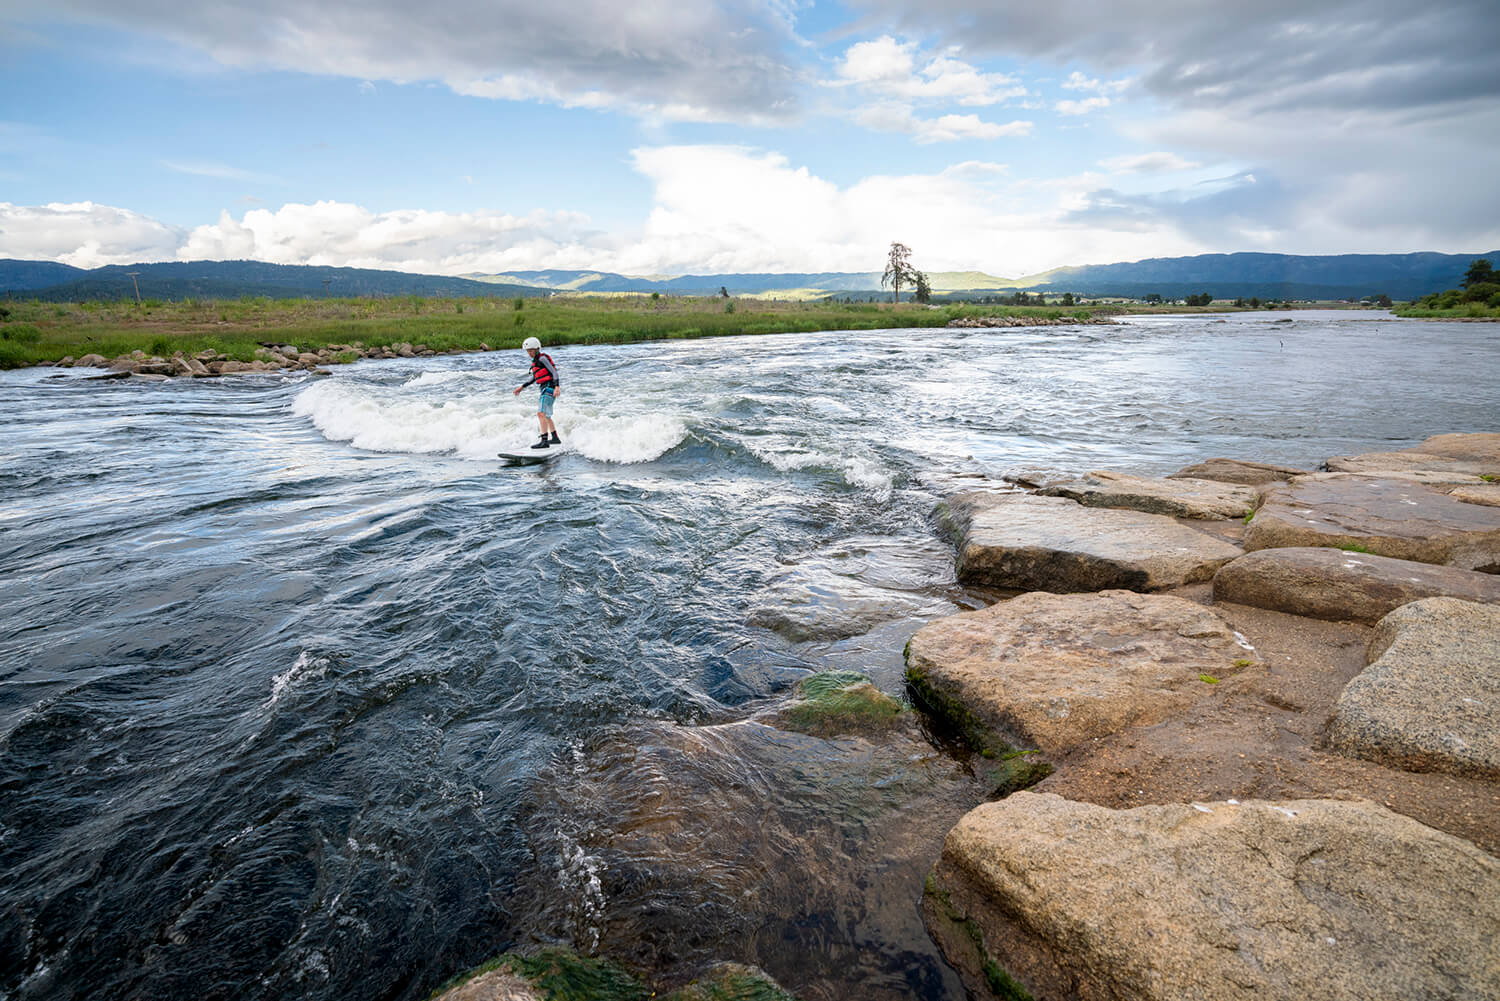 Skip the beach and get your surf on at Kelly's Whitewater Park. Photo Credit: Idaho Tourism.